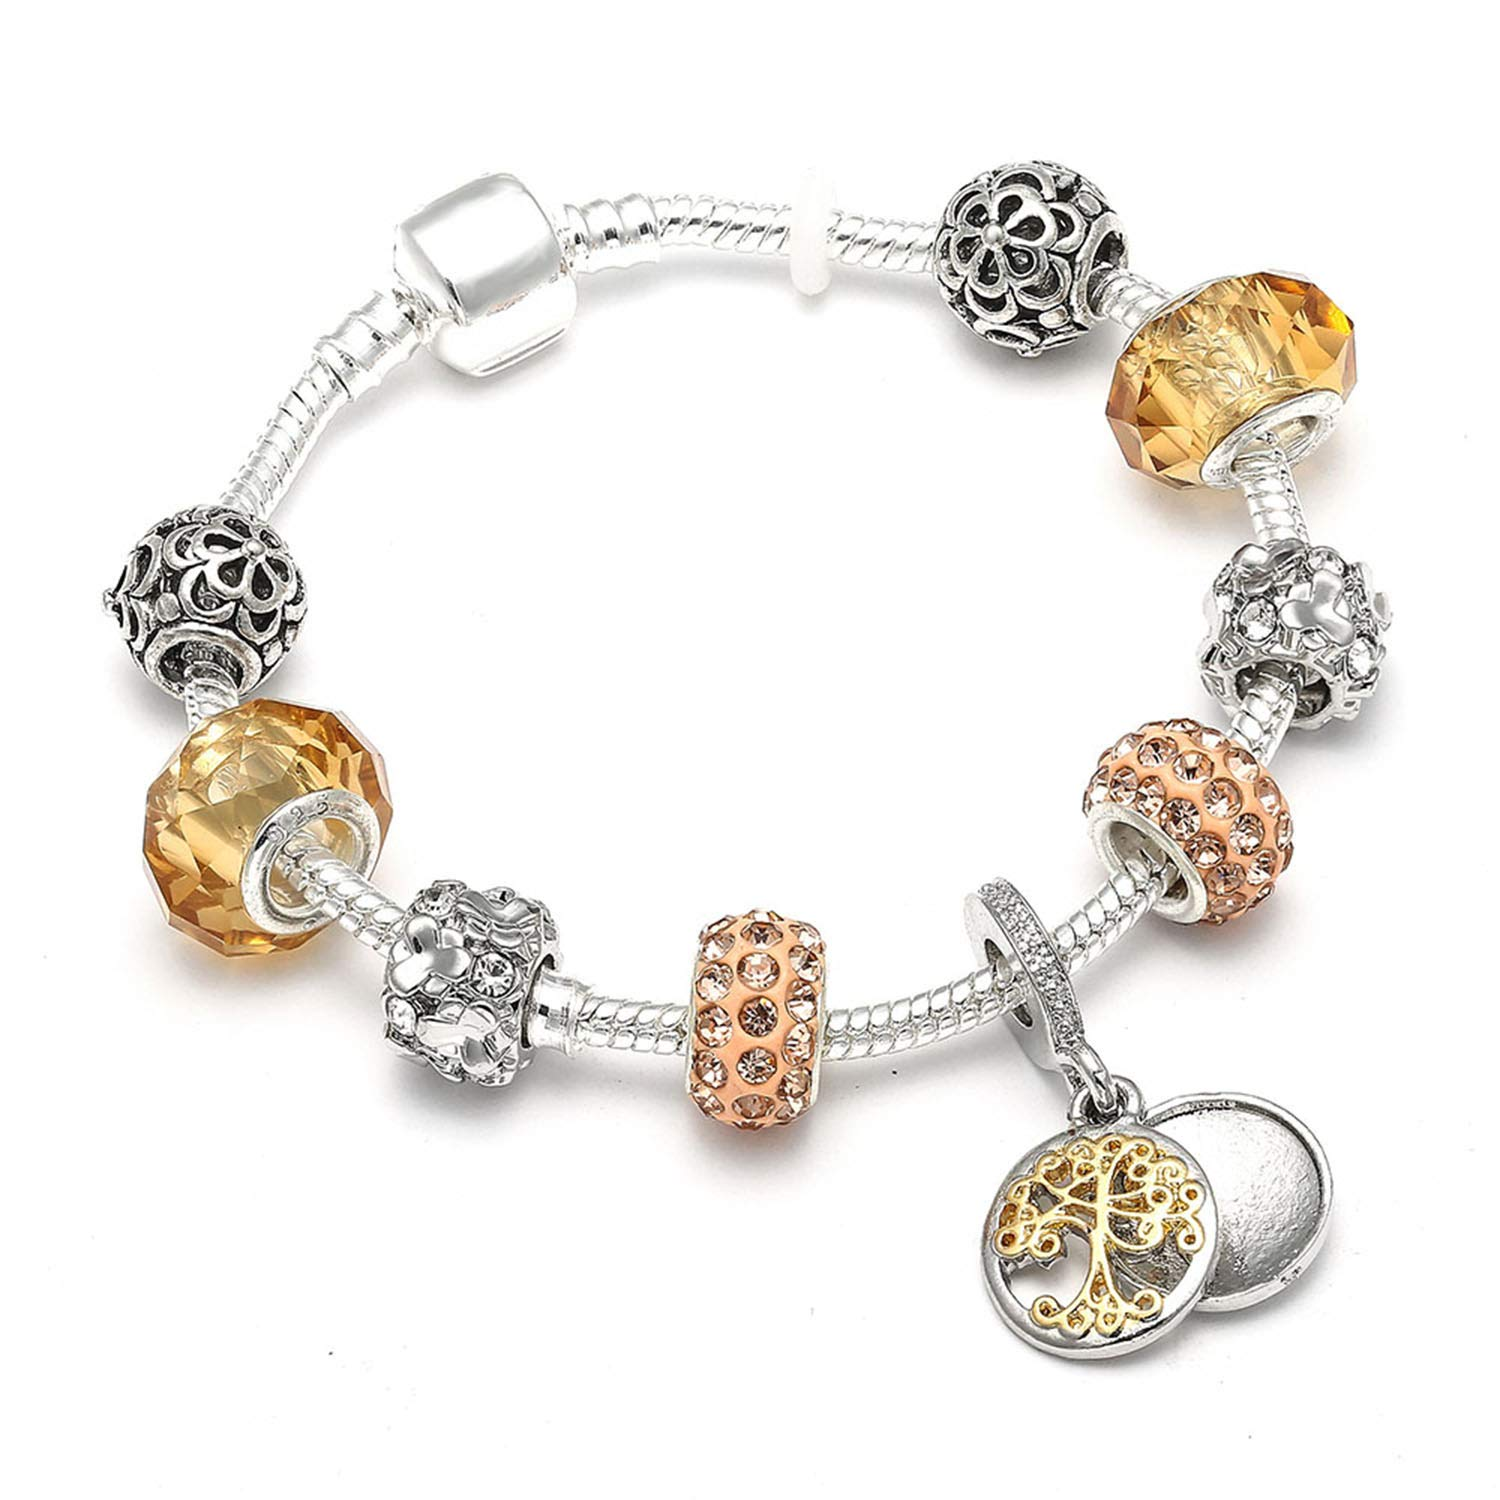 Vintage Silver Color Charm Bracelet with Tree of Life Pendant /& Gold Crystal BallBracelet Light Yellow Gold Color 20cm